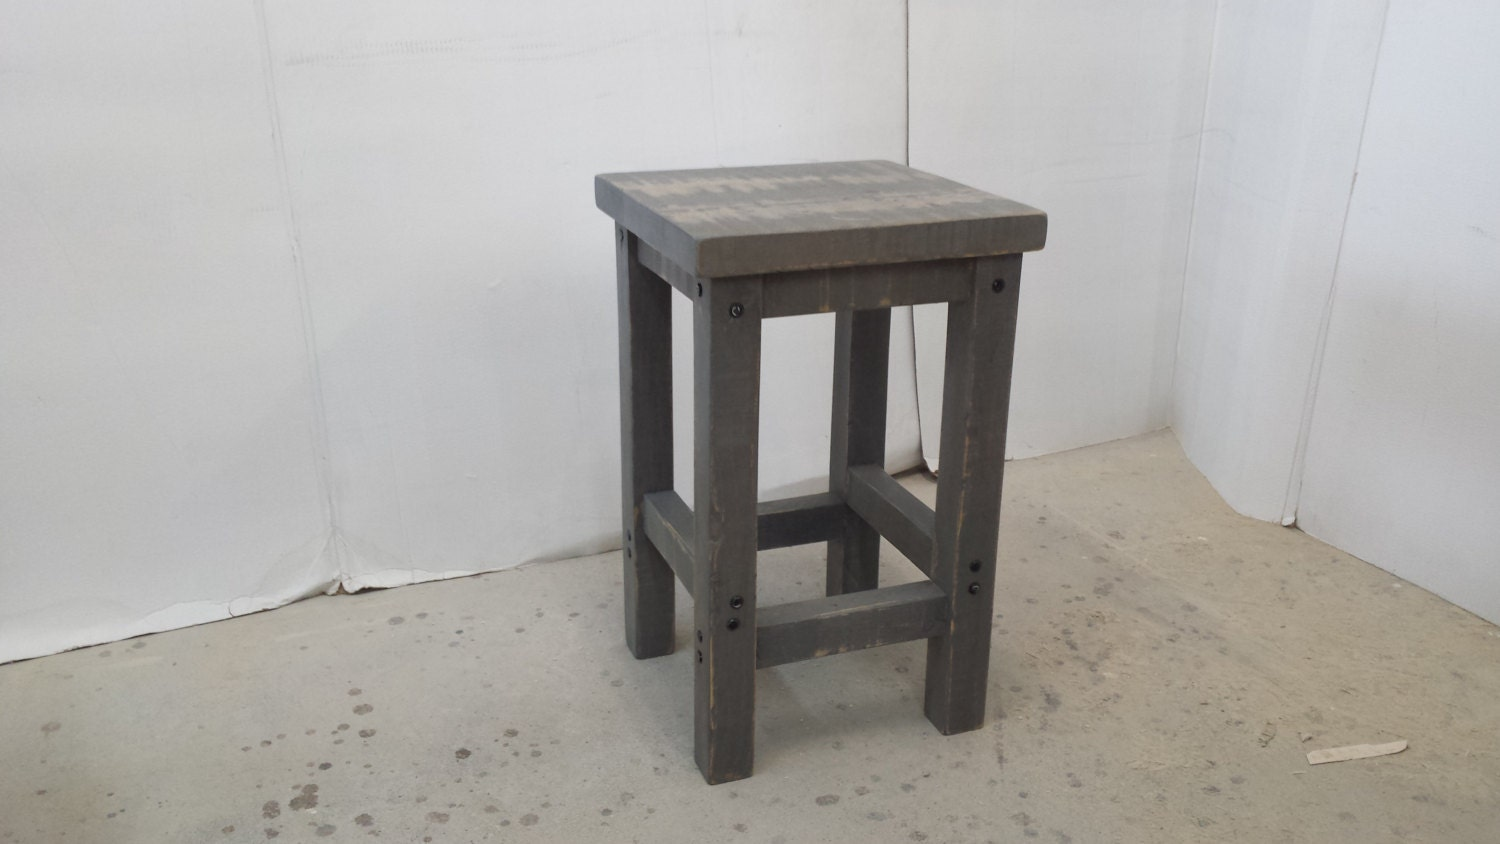 Rustic wood stool bar stools kitchen island stool for Bar stools for kitchen islands